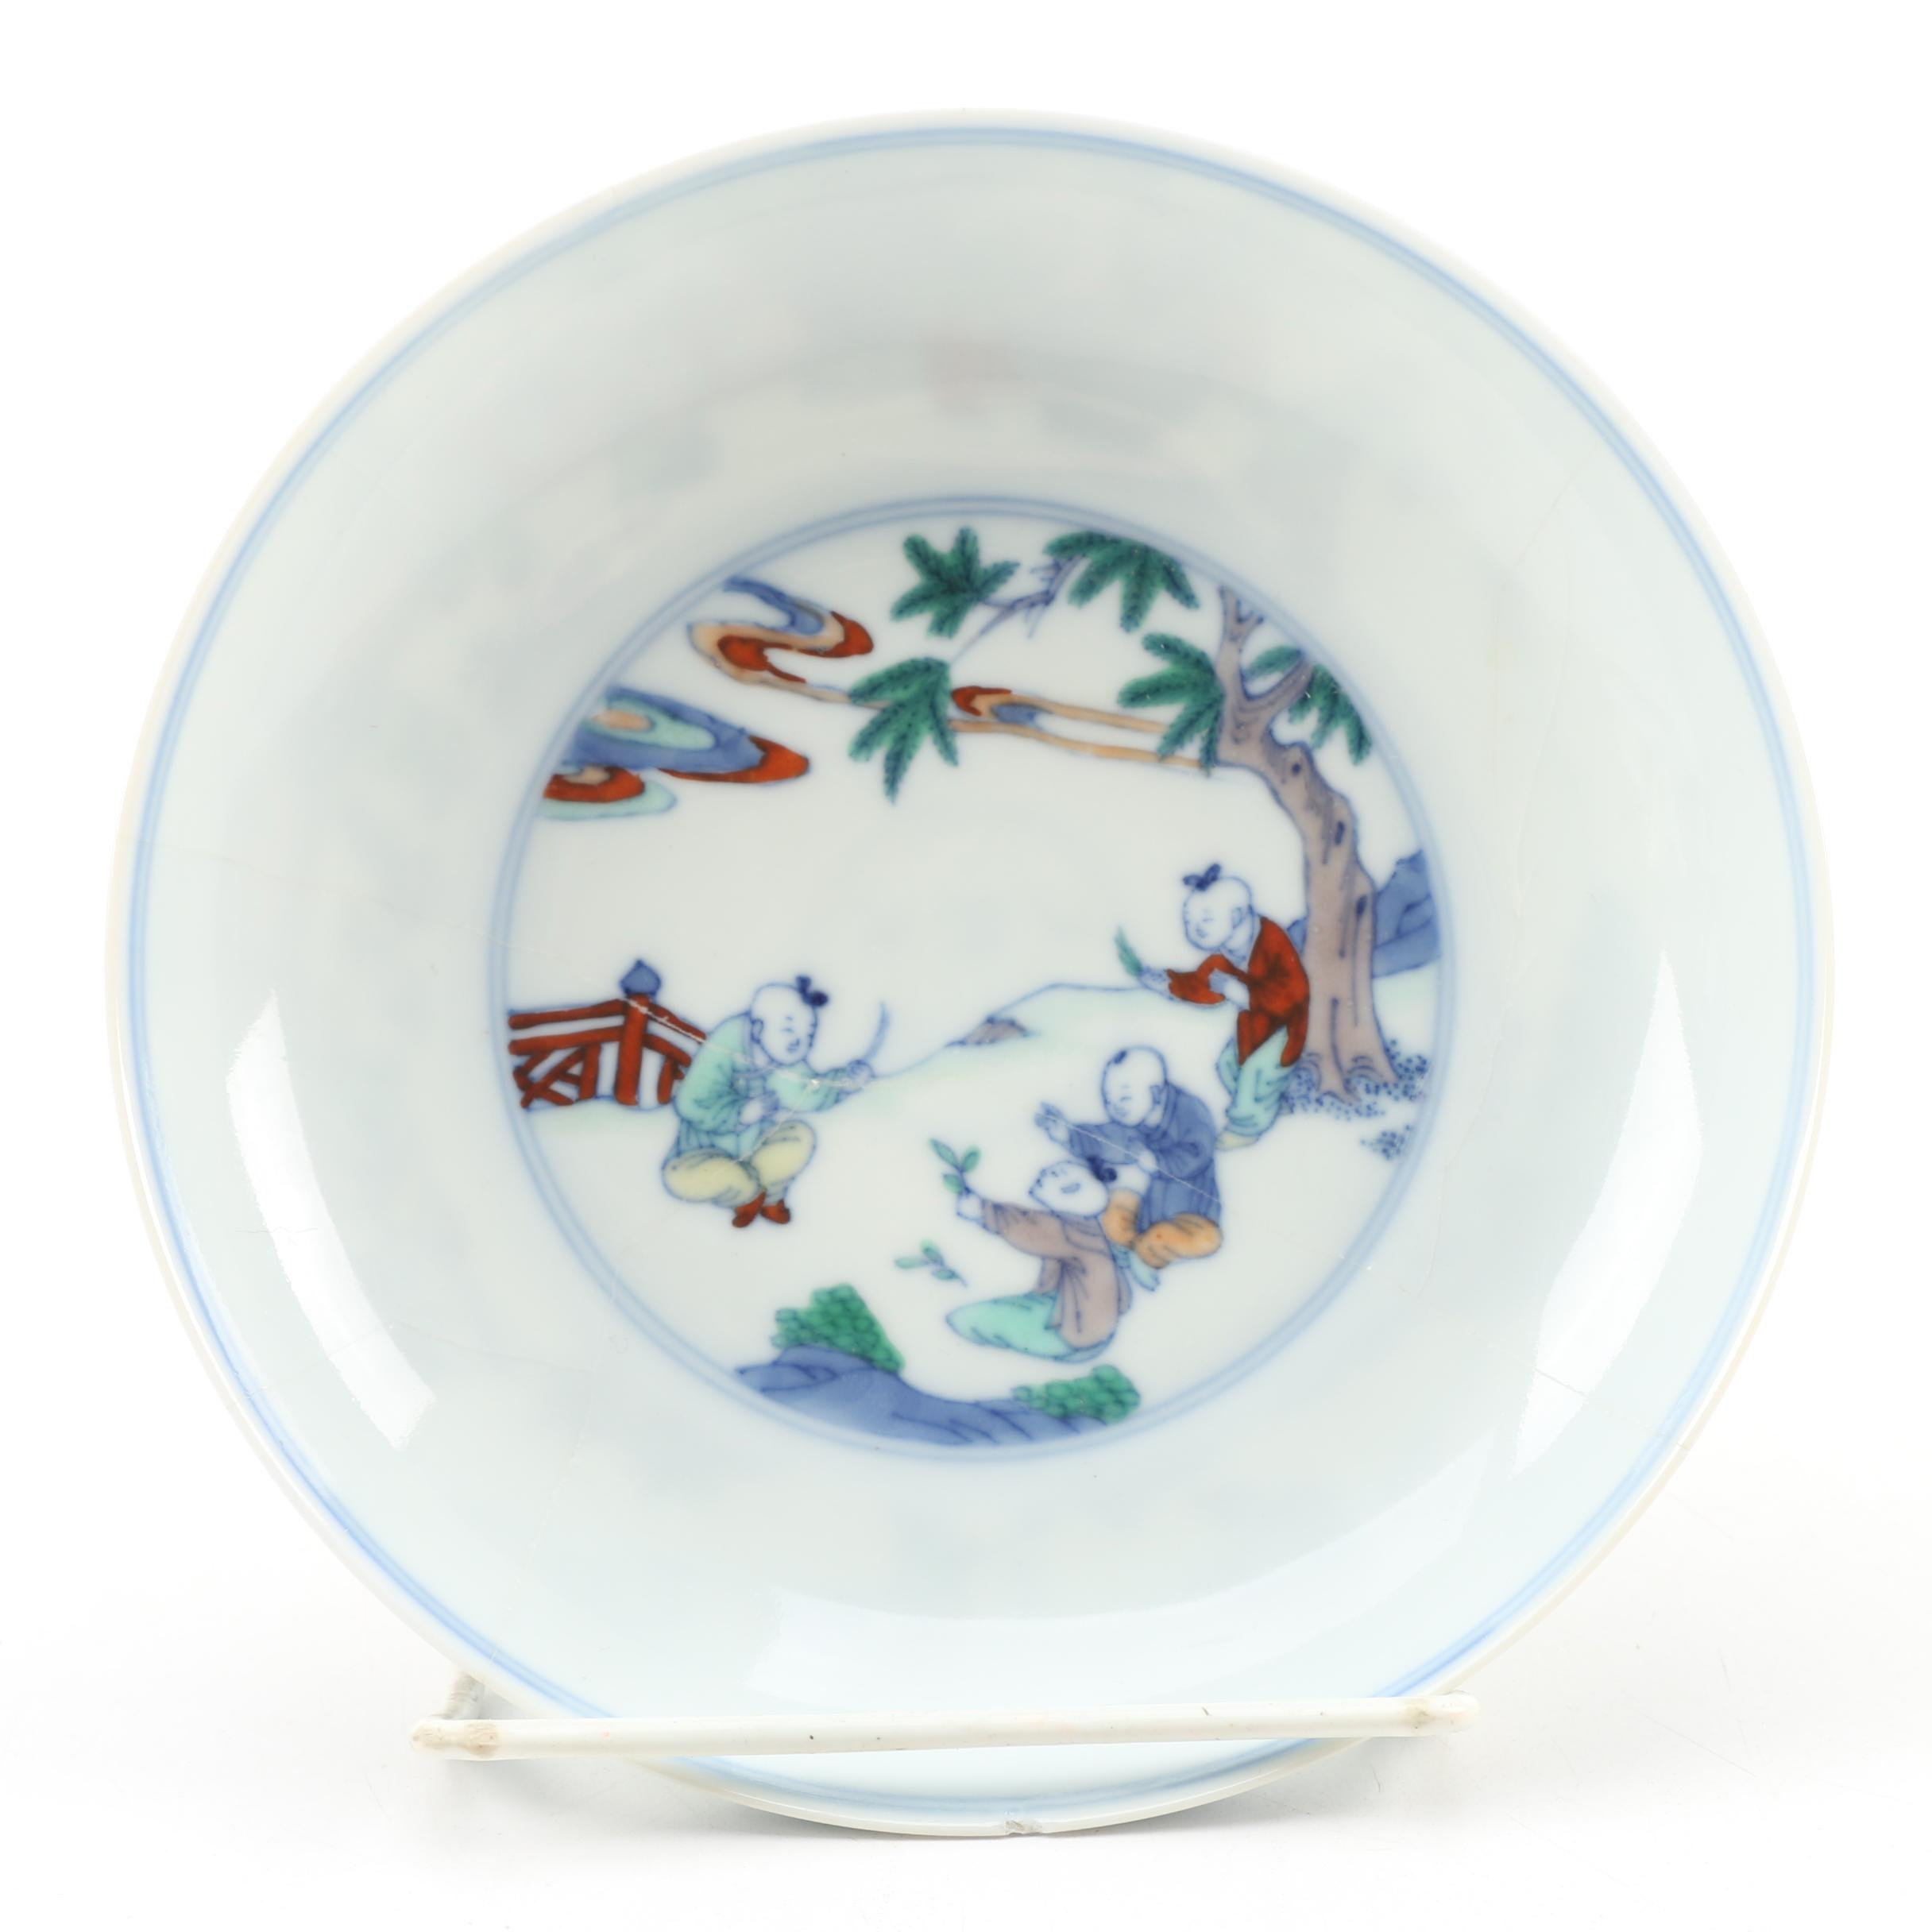 Chinese Doucai Porcelain Dish with Polychrome Enamels, 17th/18th Century